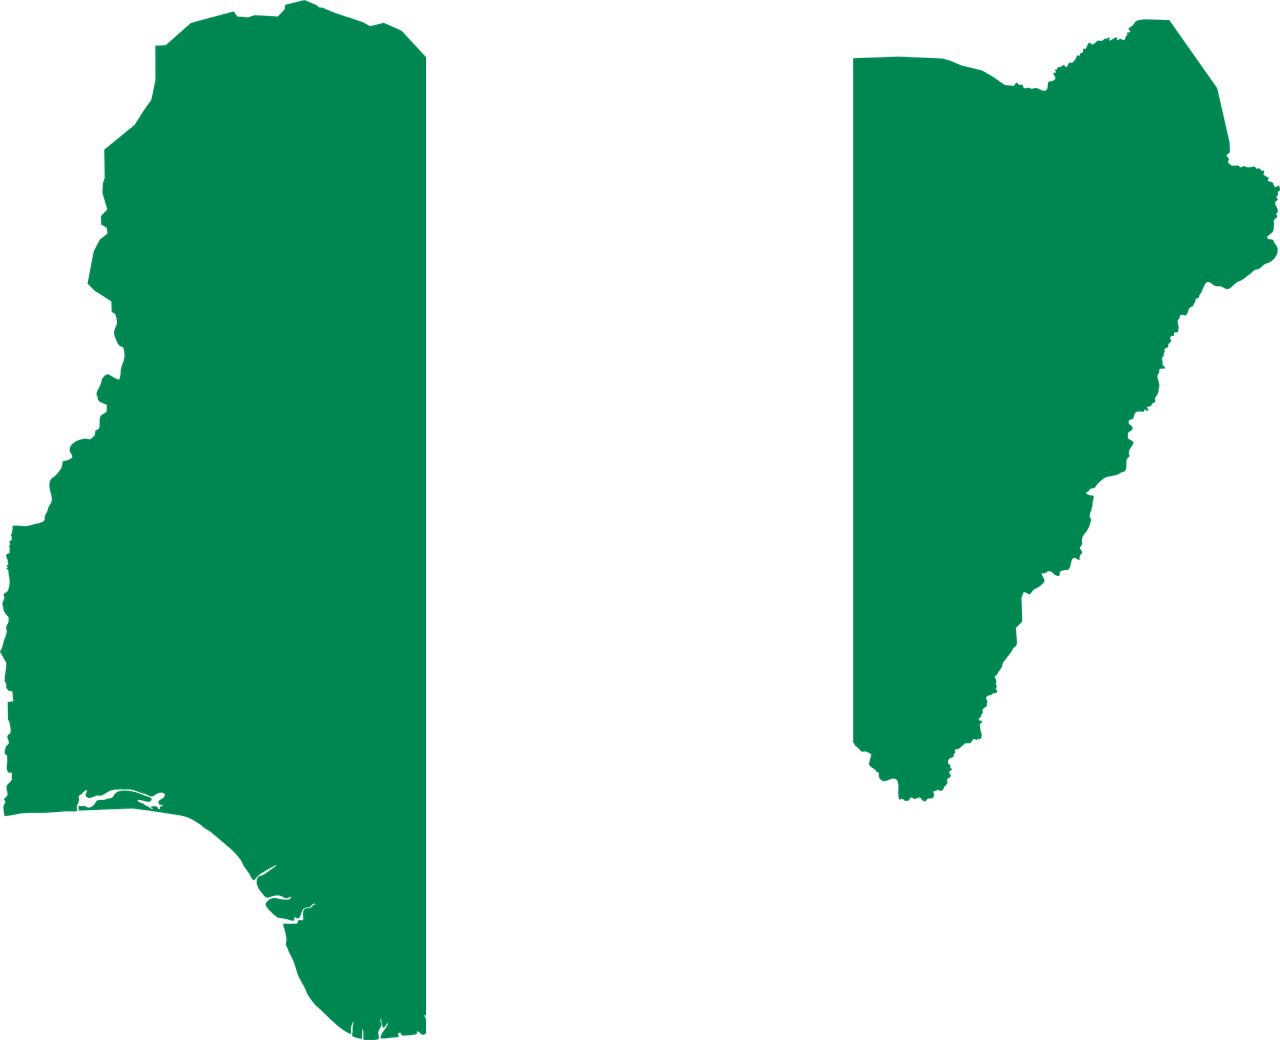 Nigeria Country Context